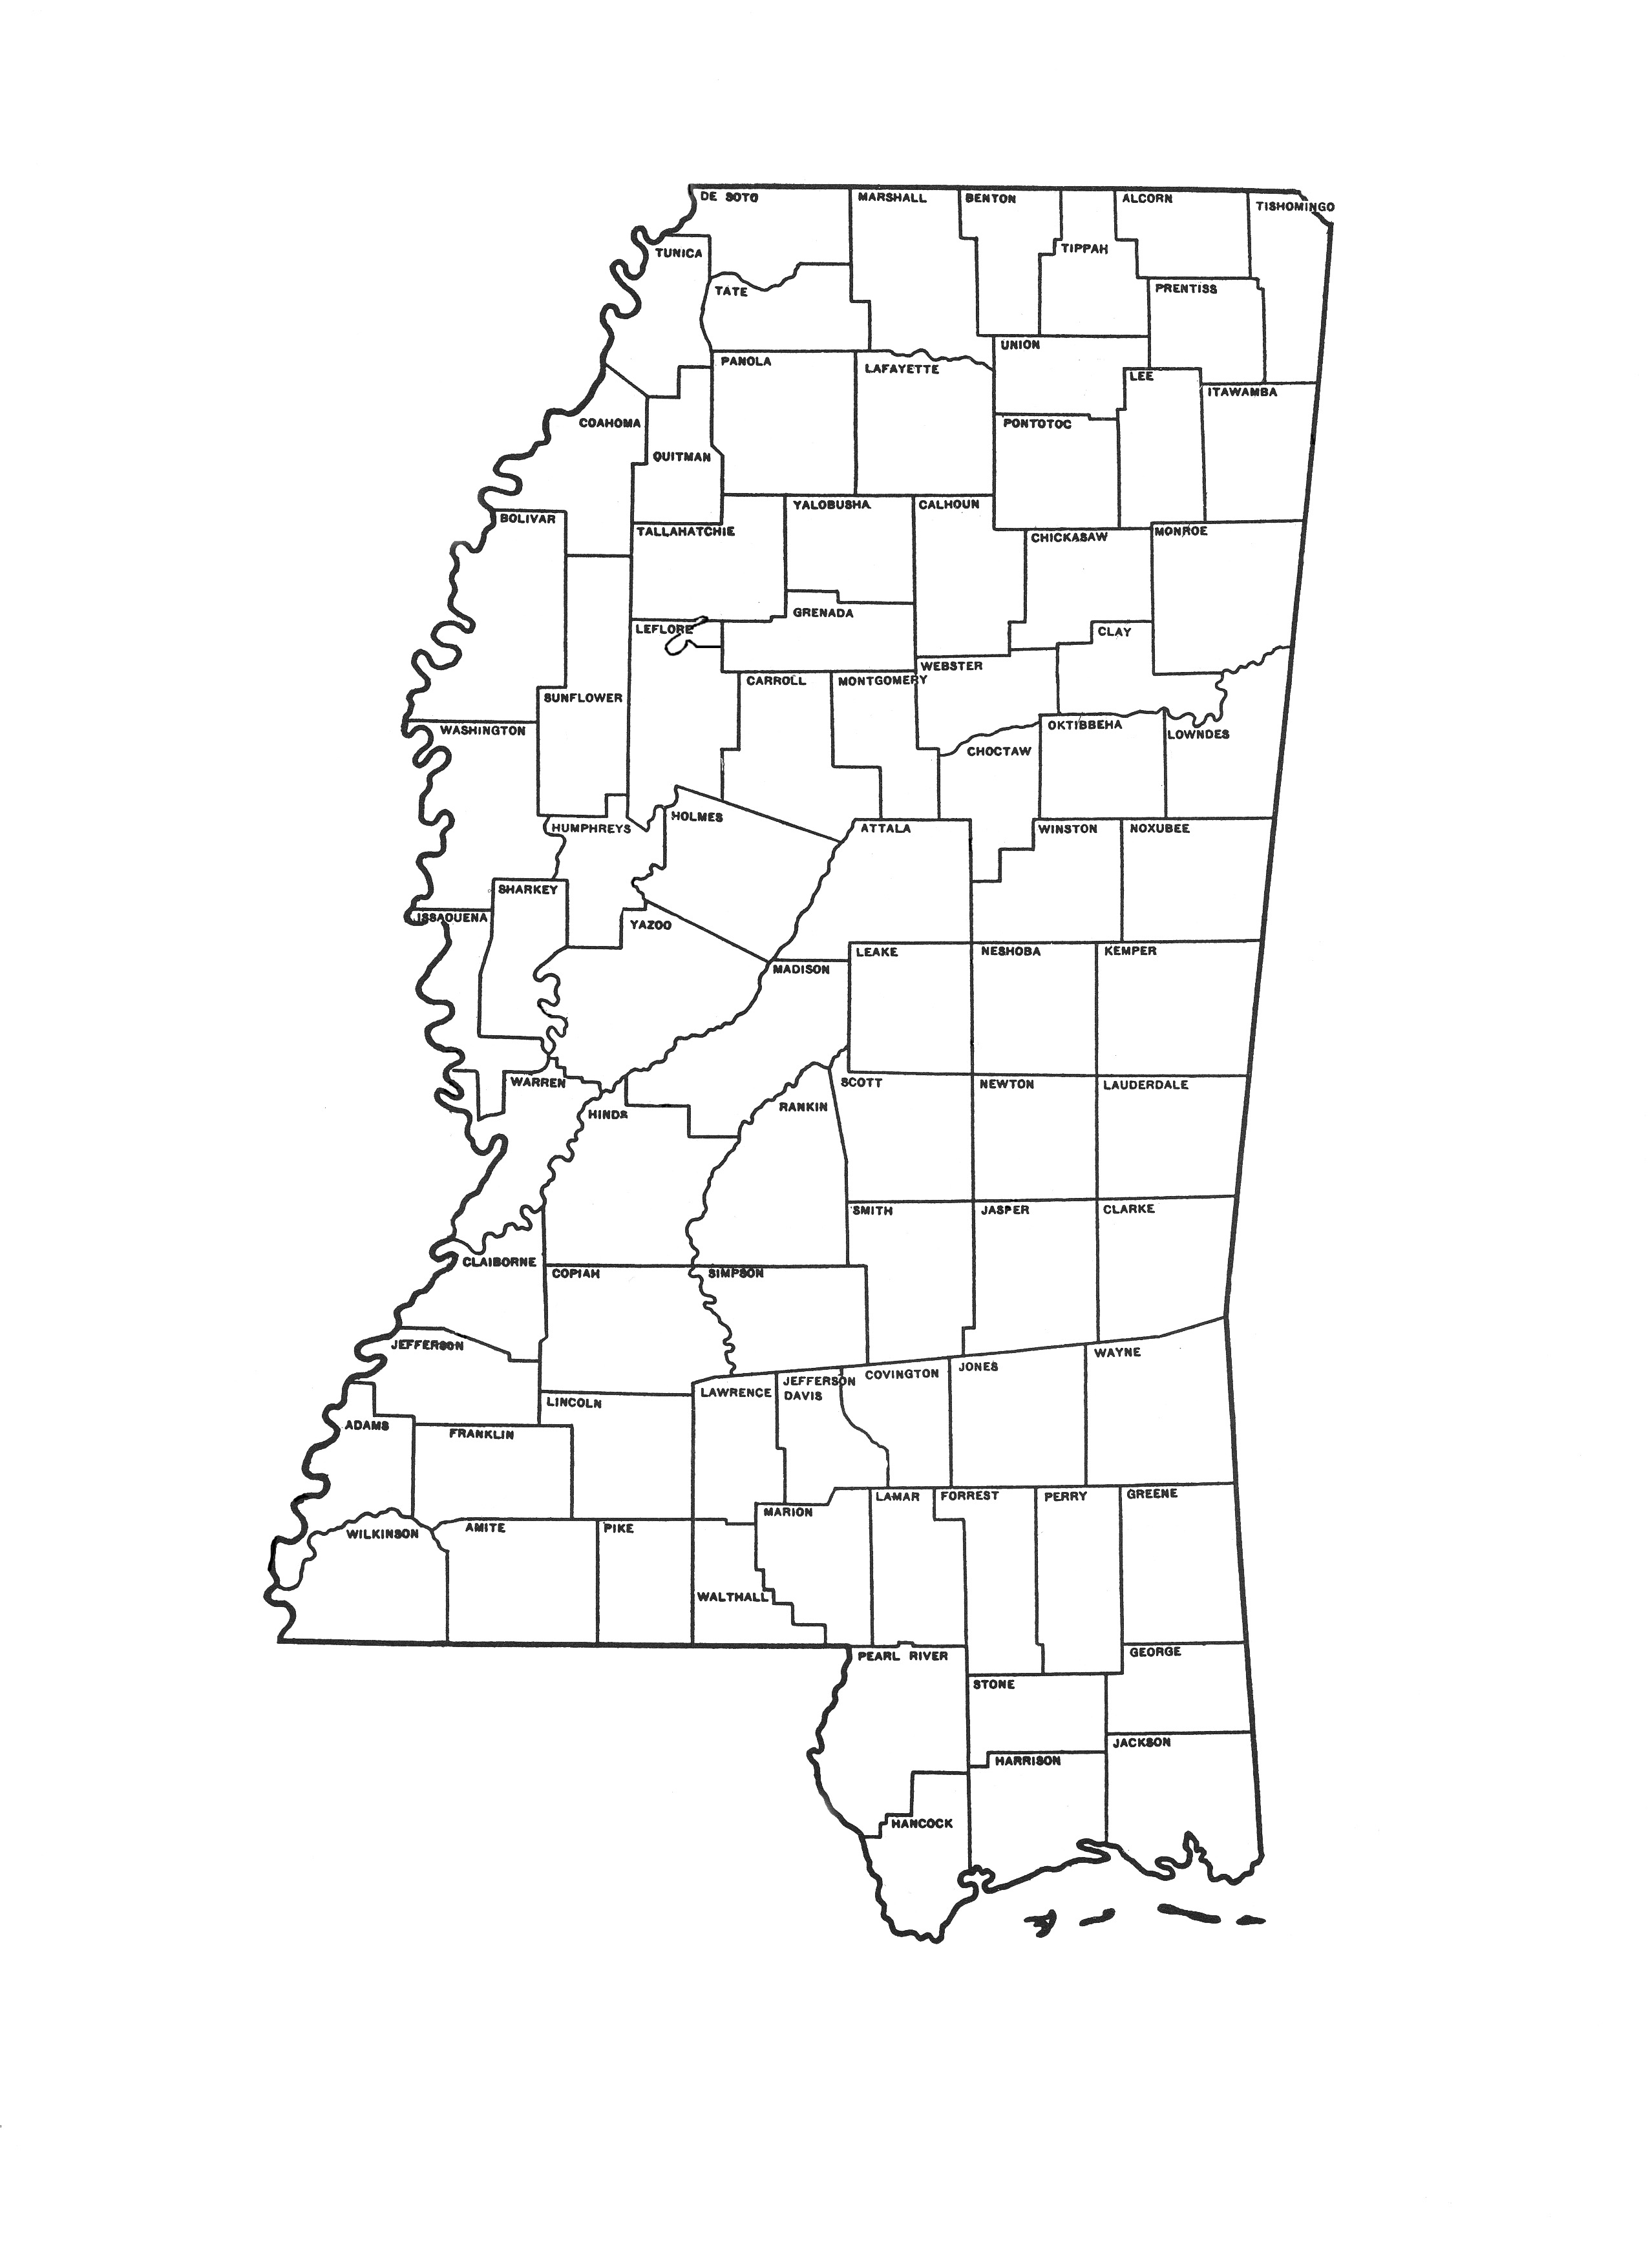 Free coloring pages of mississippi river